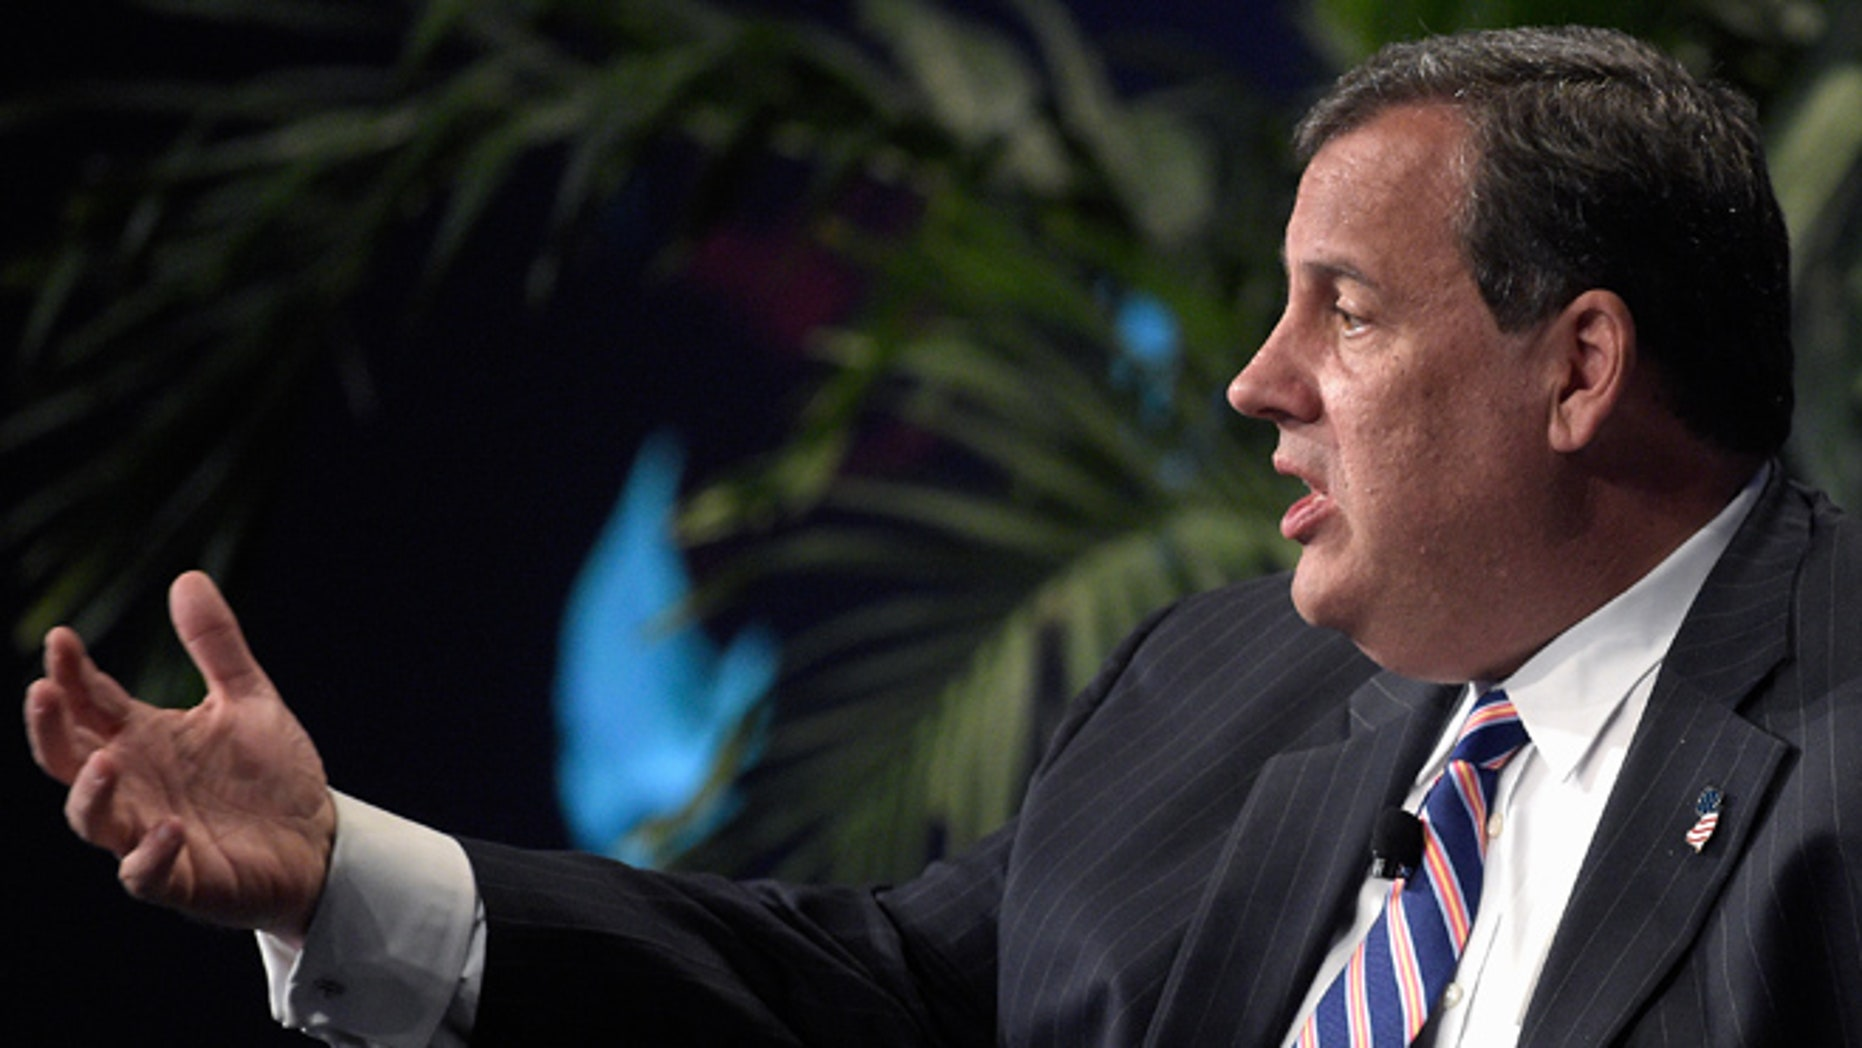 June 2, 2015: New Jersey Gov. Chris Christie answers a question during a summit in Lake Buena Vista, Fla.